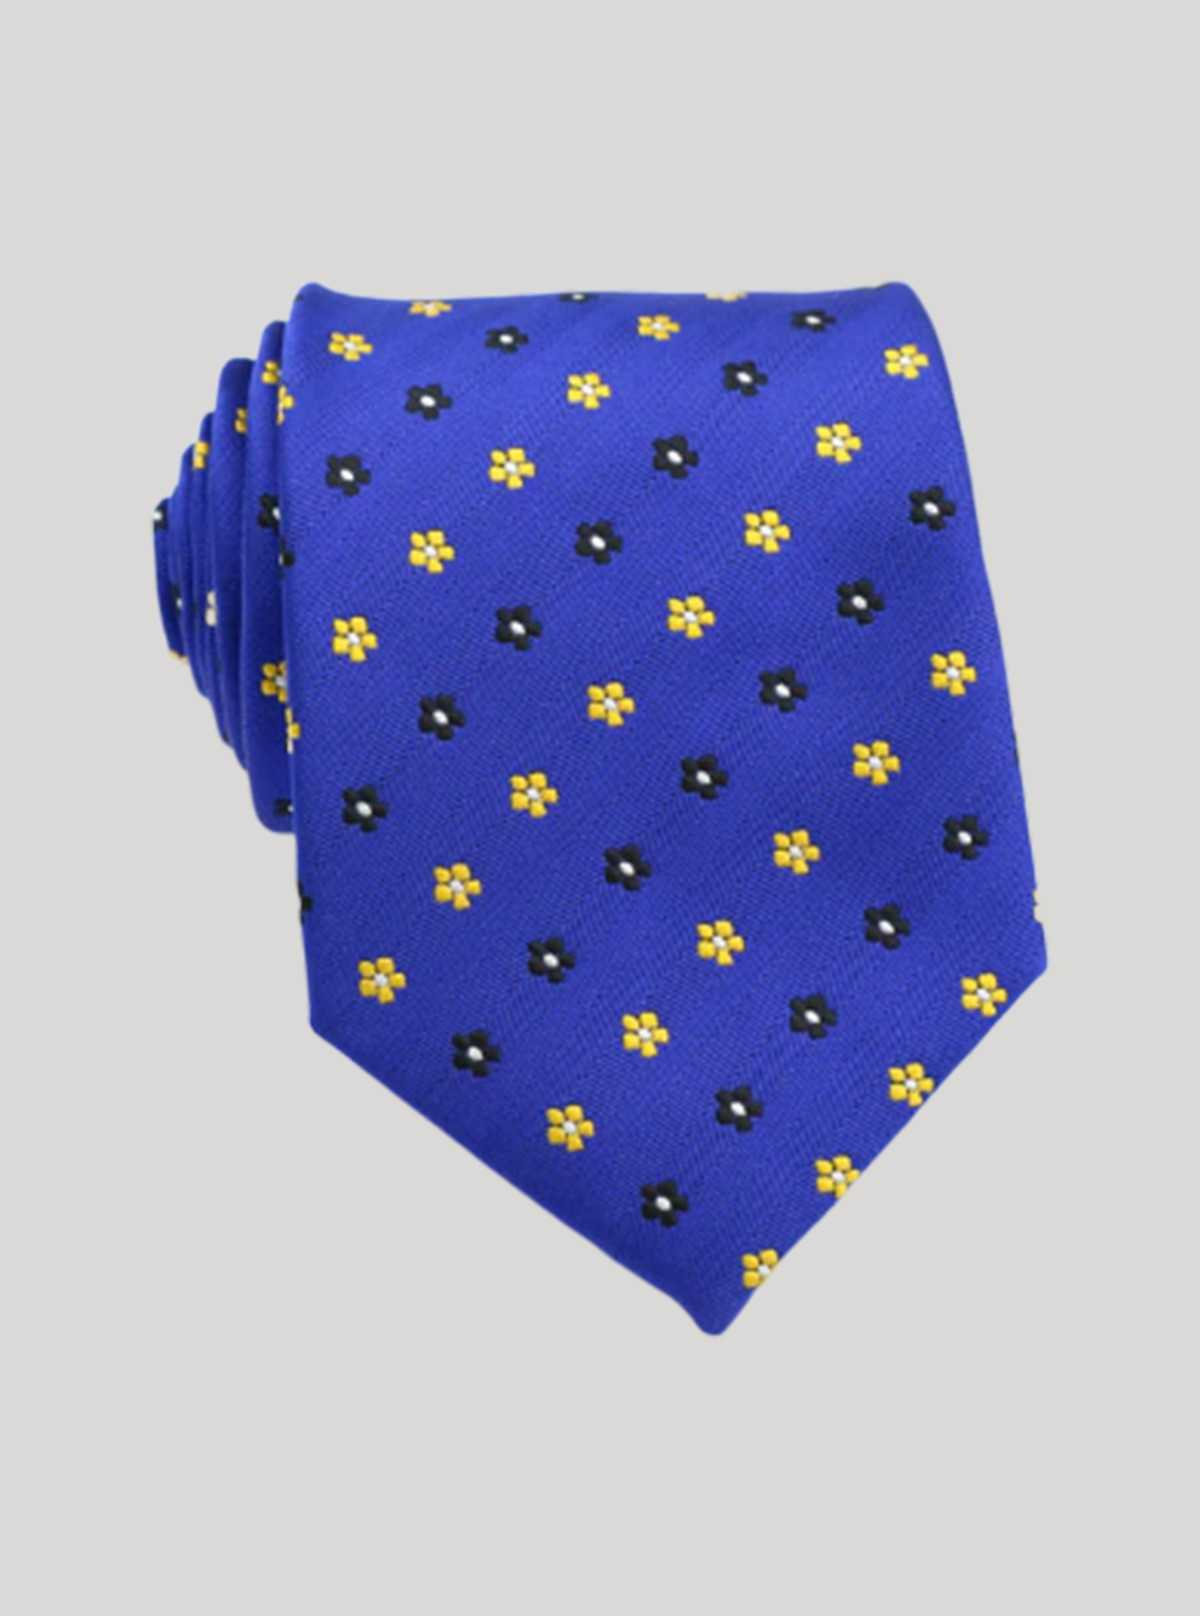 Royal Jacuard Floral Design Tie Boer and Fitch - 1